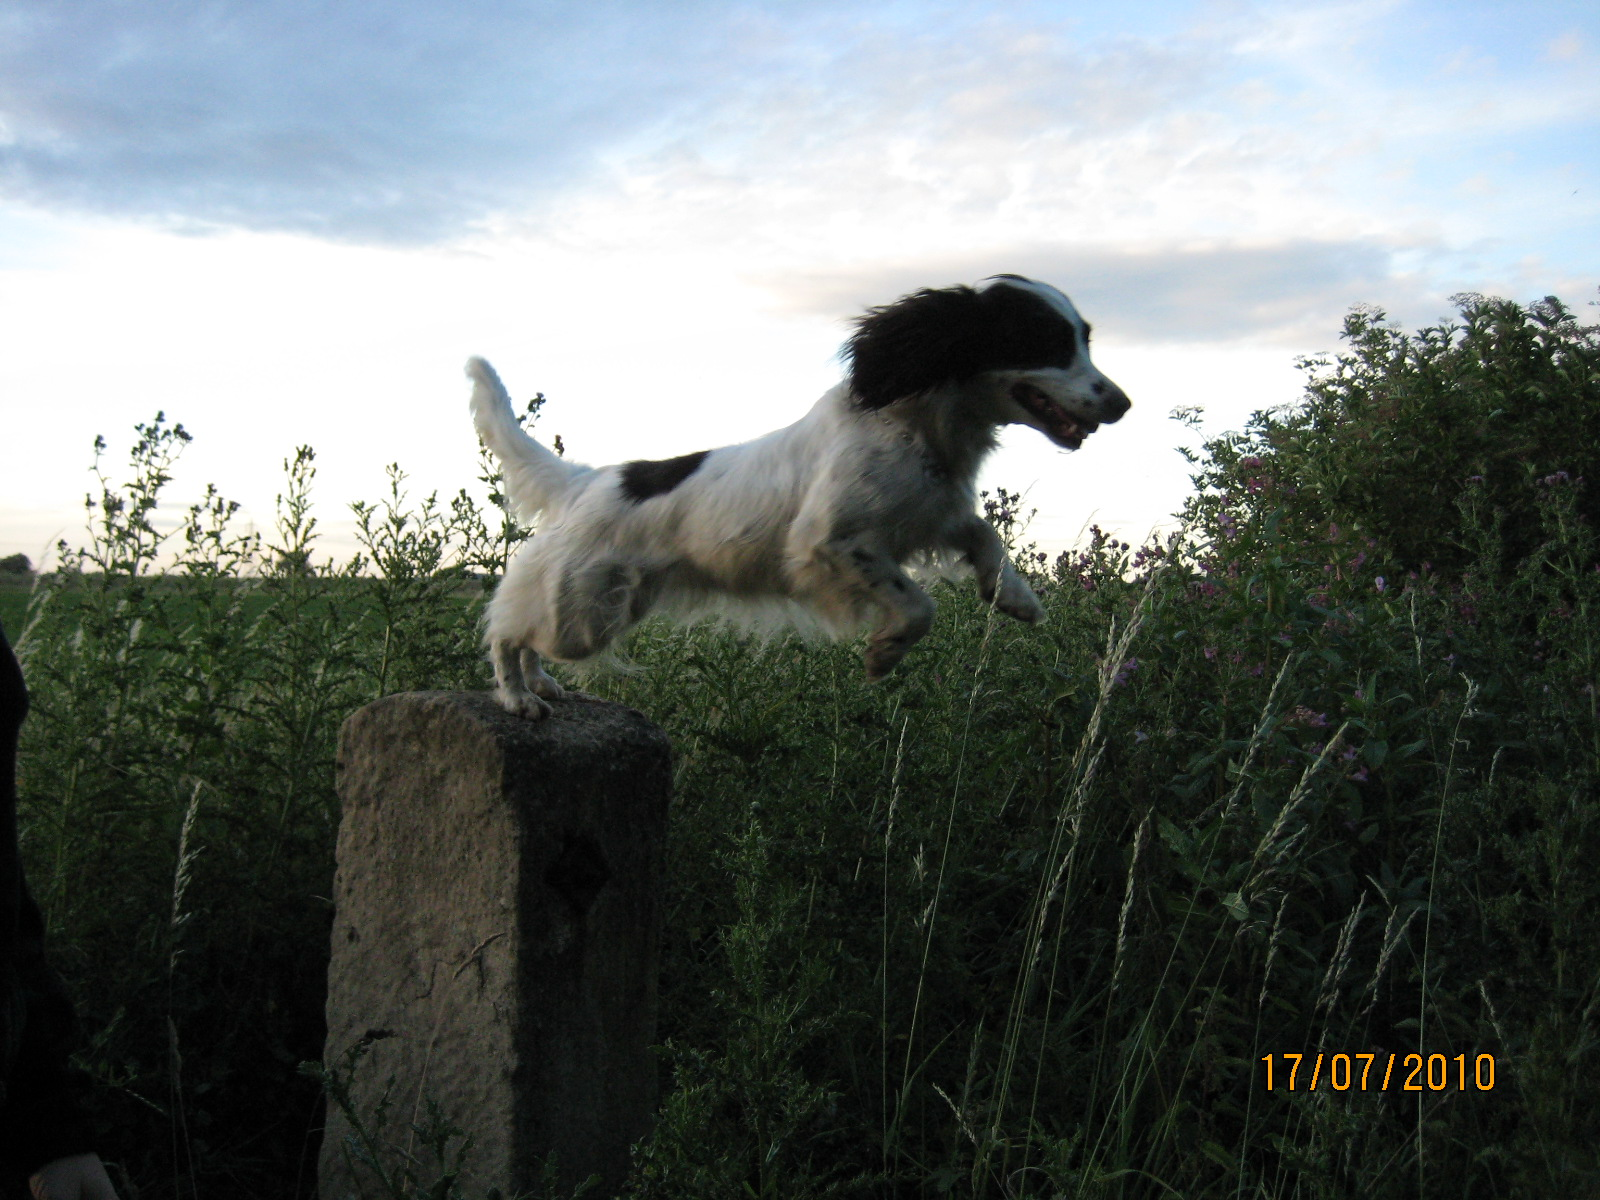 leaping off my perch again